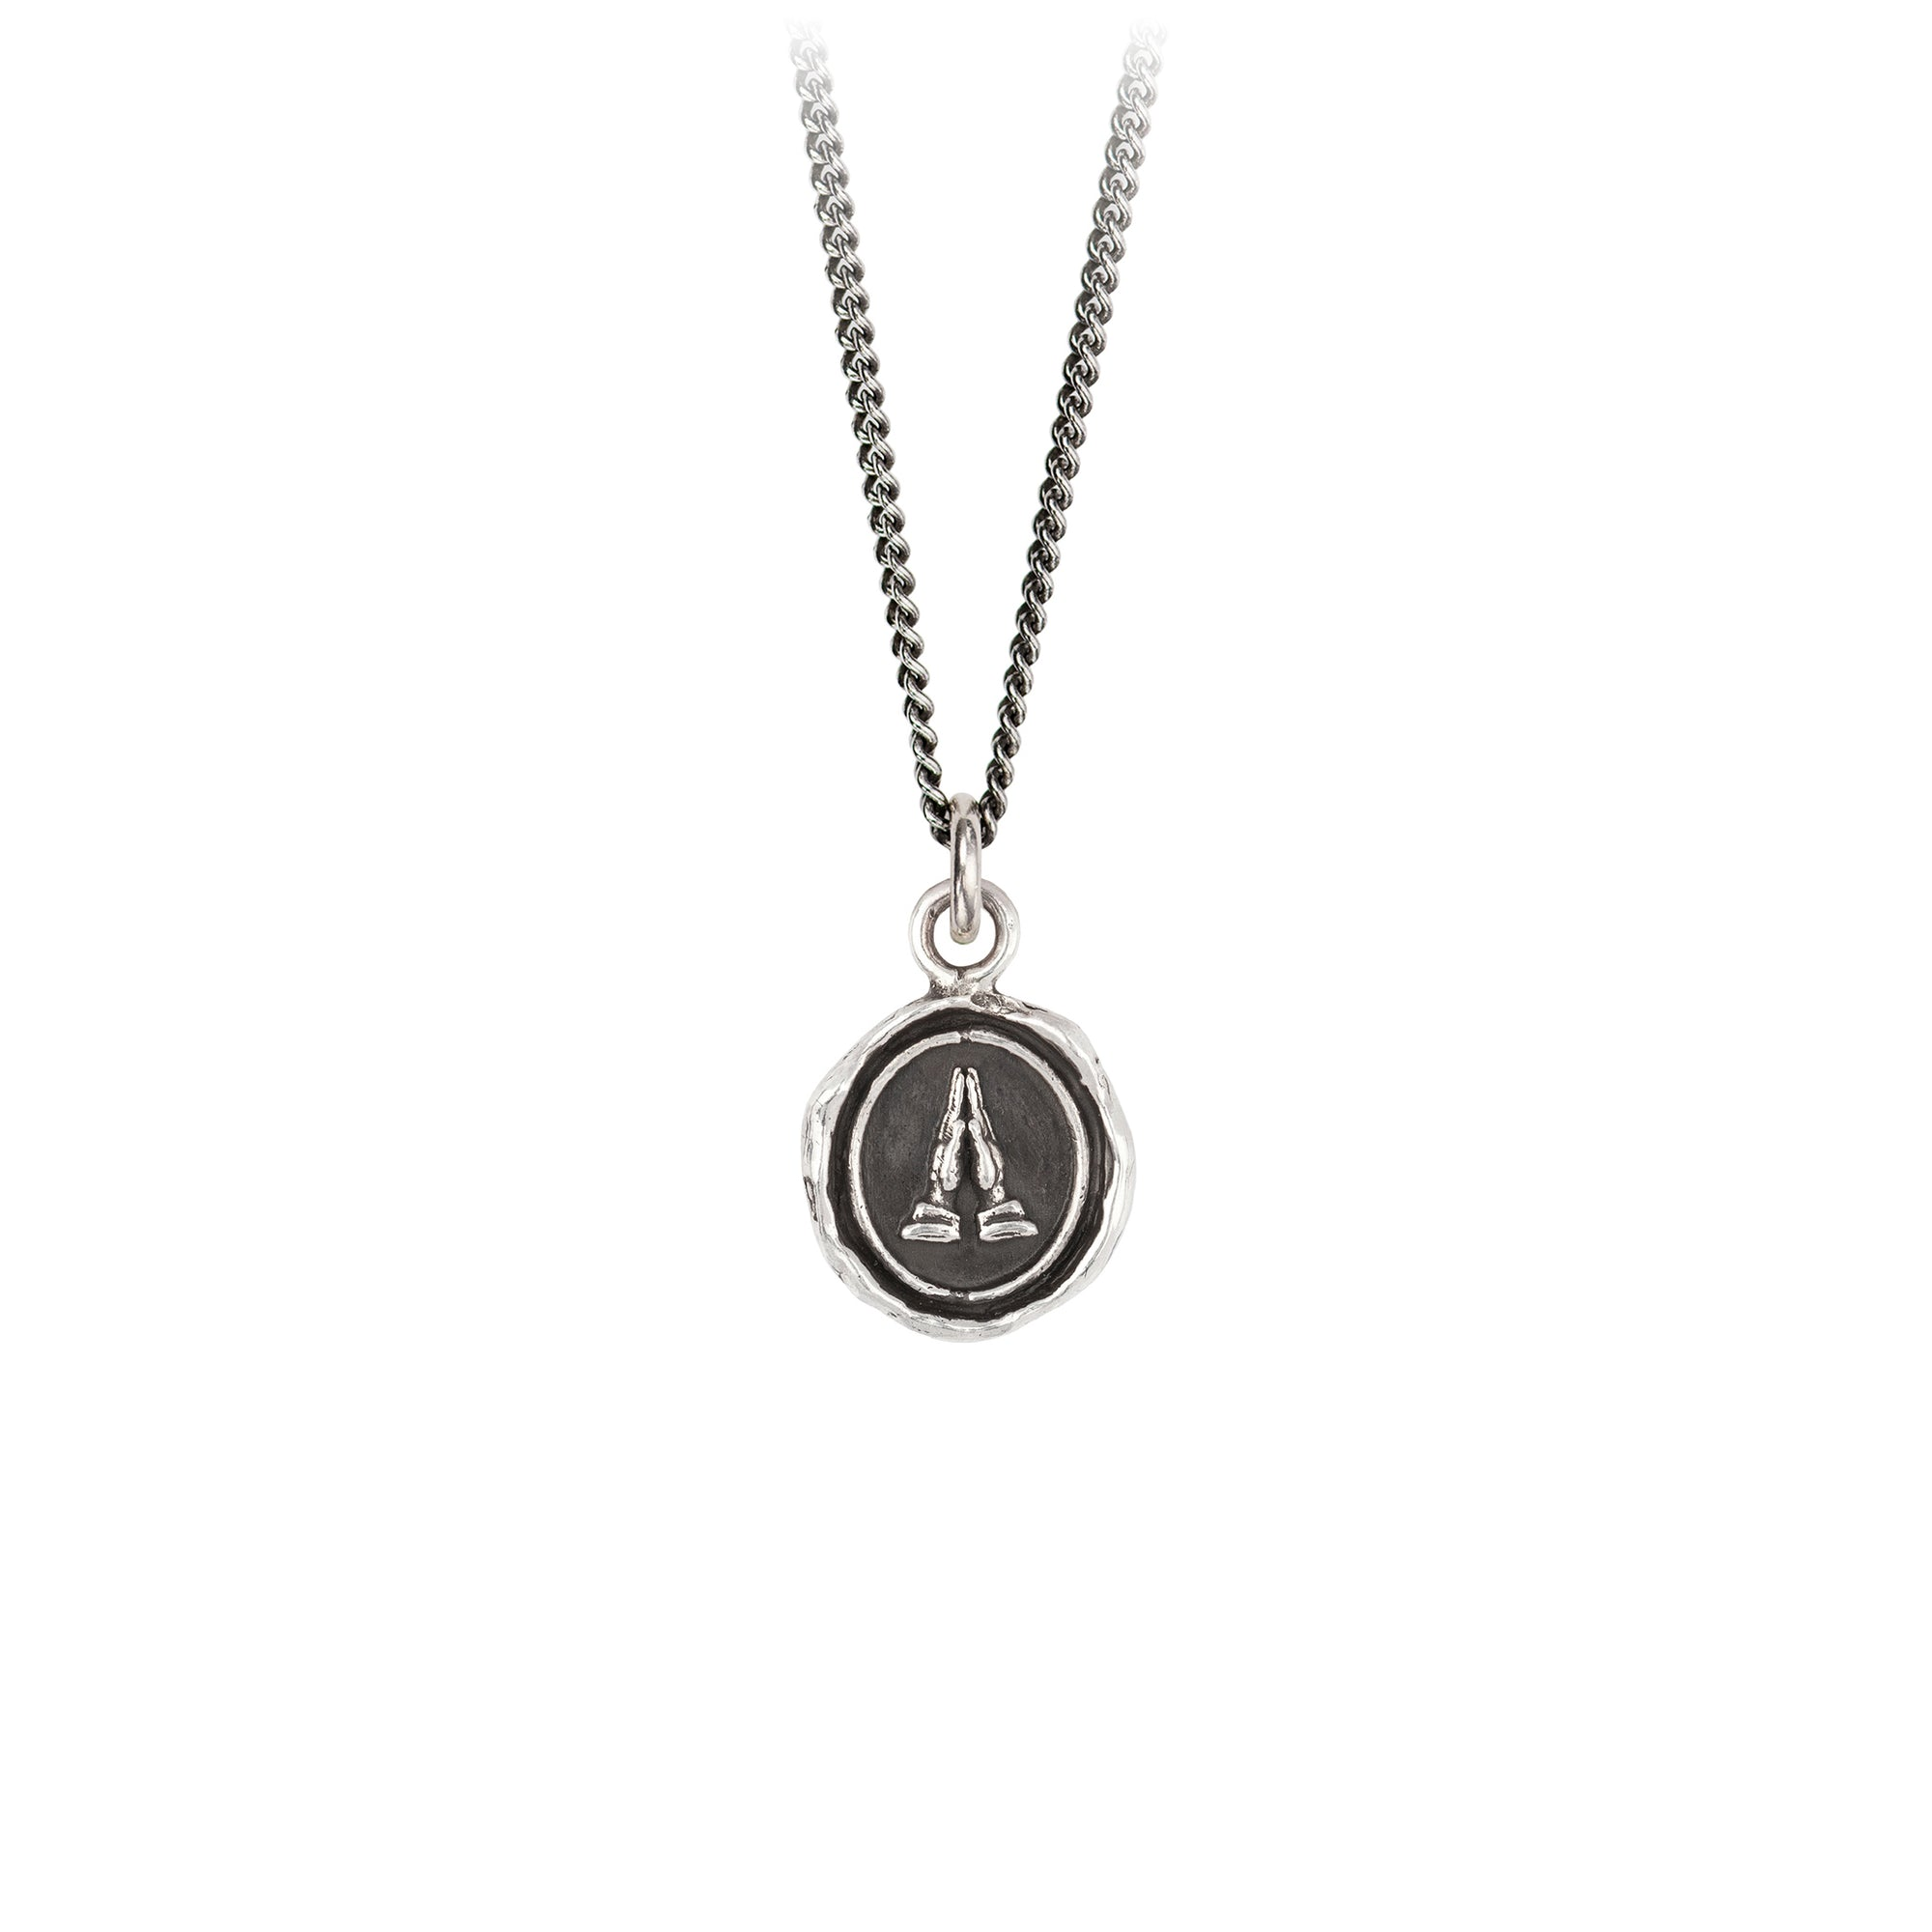 Pyrrha Grateful Appreciation Talisman Necklace Silver